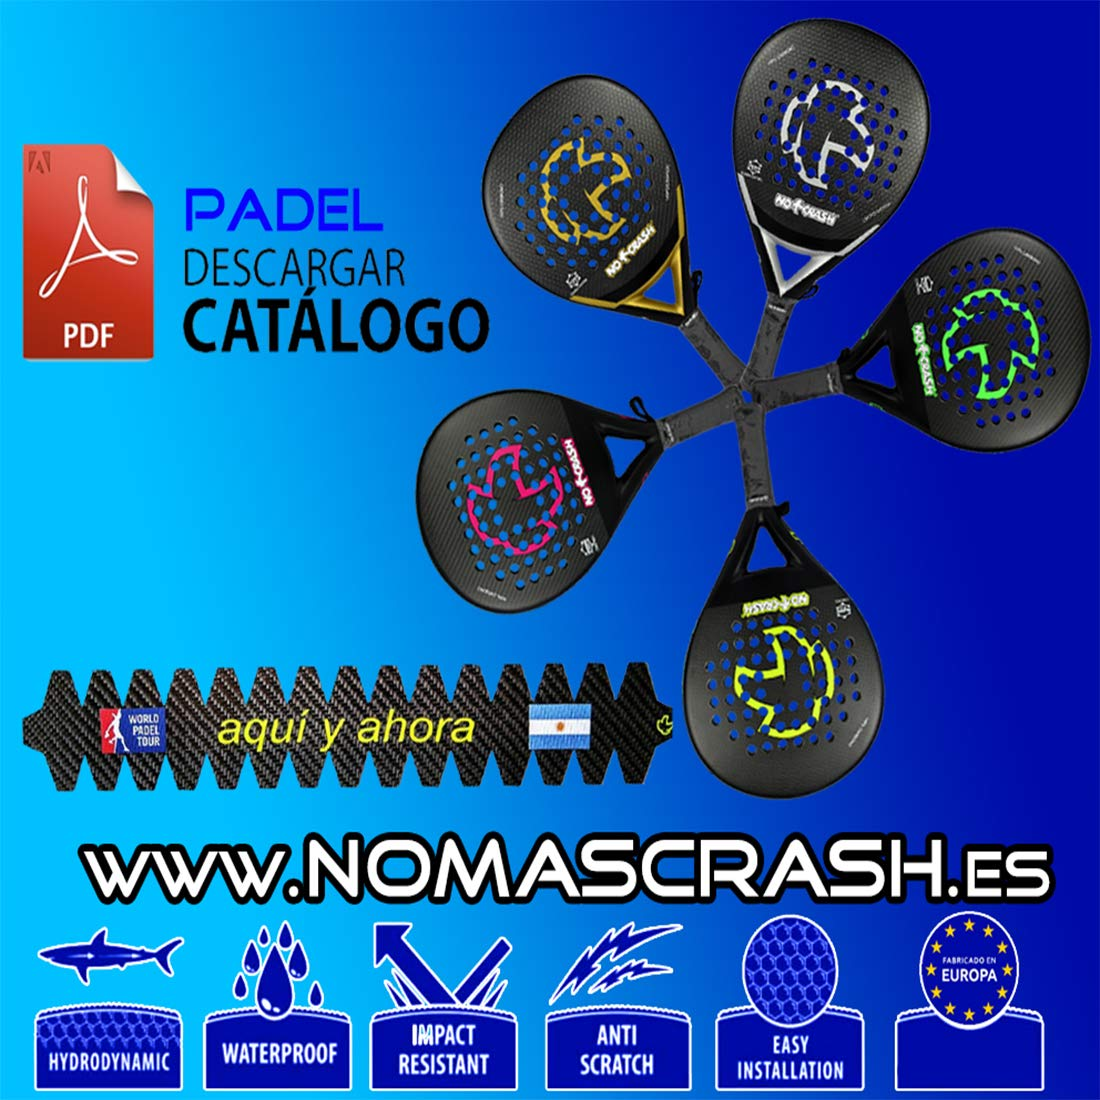 No+Crash Pack 3Ud Protector Pala 100% Carbono L nomascrash: Amazon ...